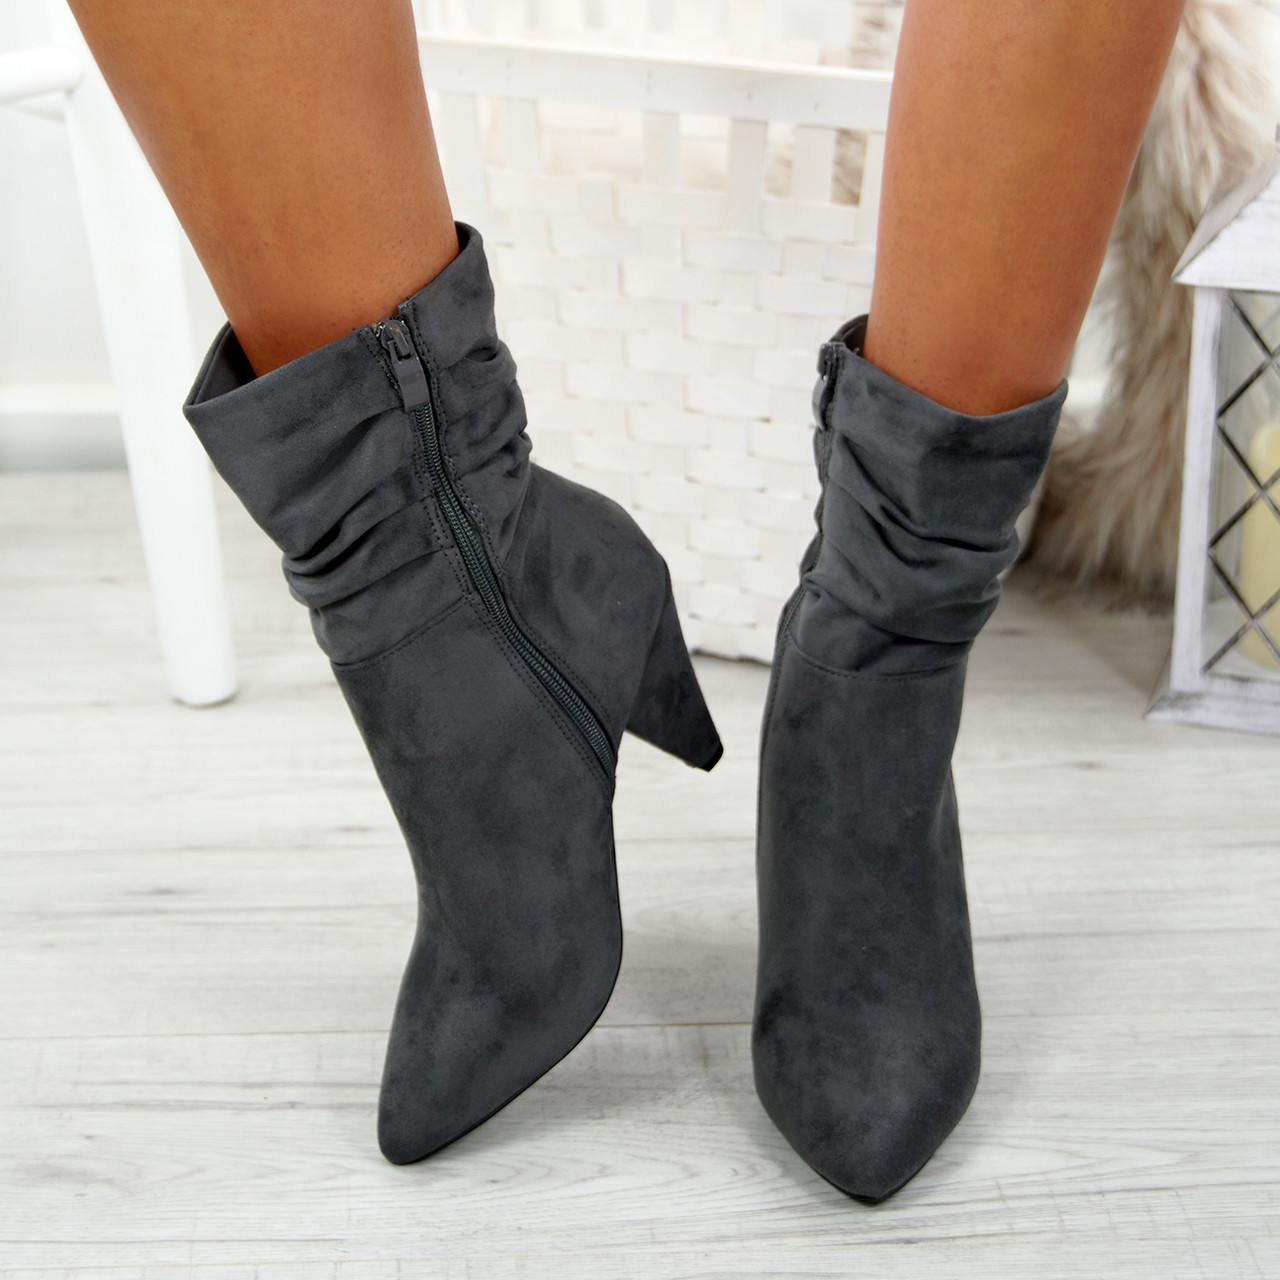 buy grey high ankle boots uk